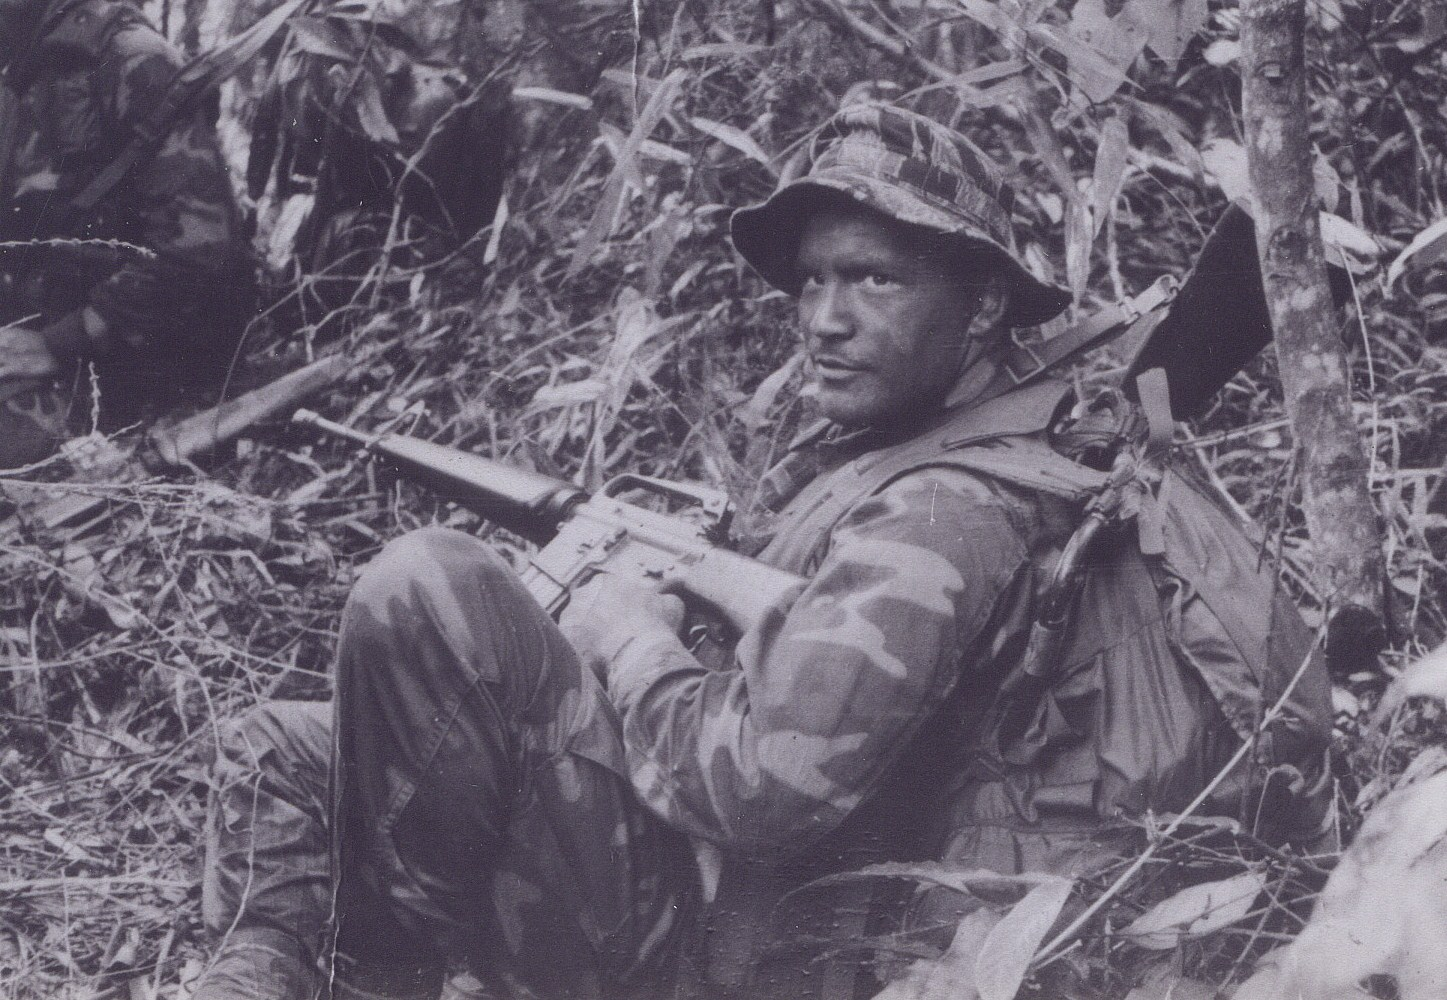 SGT Mark A Miller - Team 11 E Company - 20th Infantry ABN Long Range Patrol Op at Tuy Hoa on the Day Before TET 1968